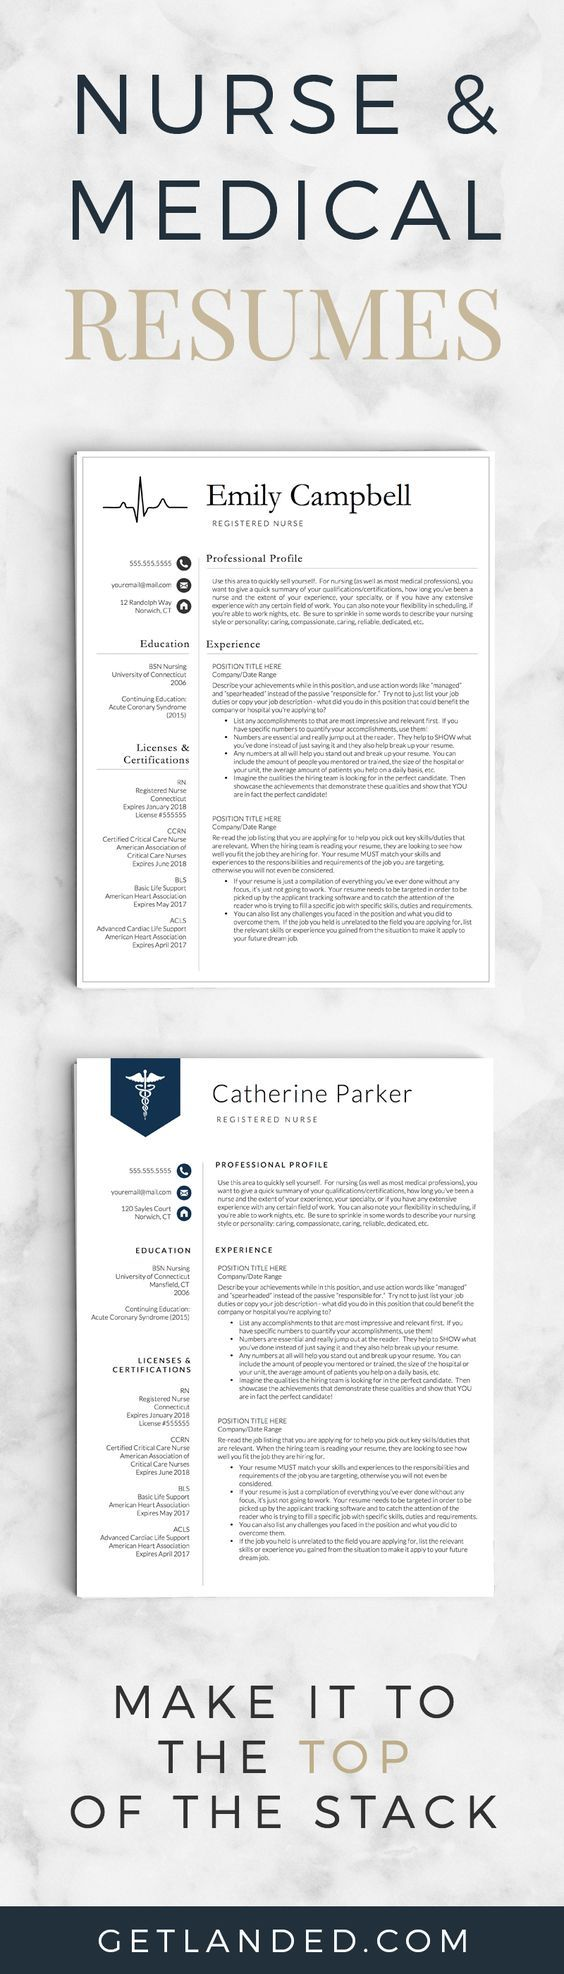 2018 Resume Templates Nurse Resume Templates  Medical Resumes  Resume Templates